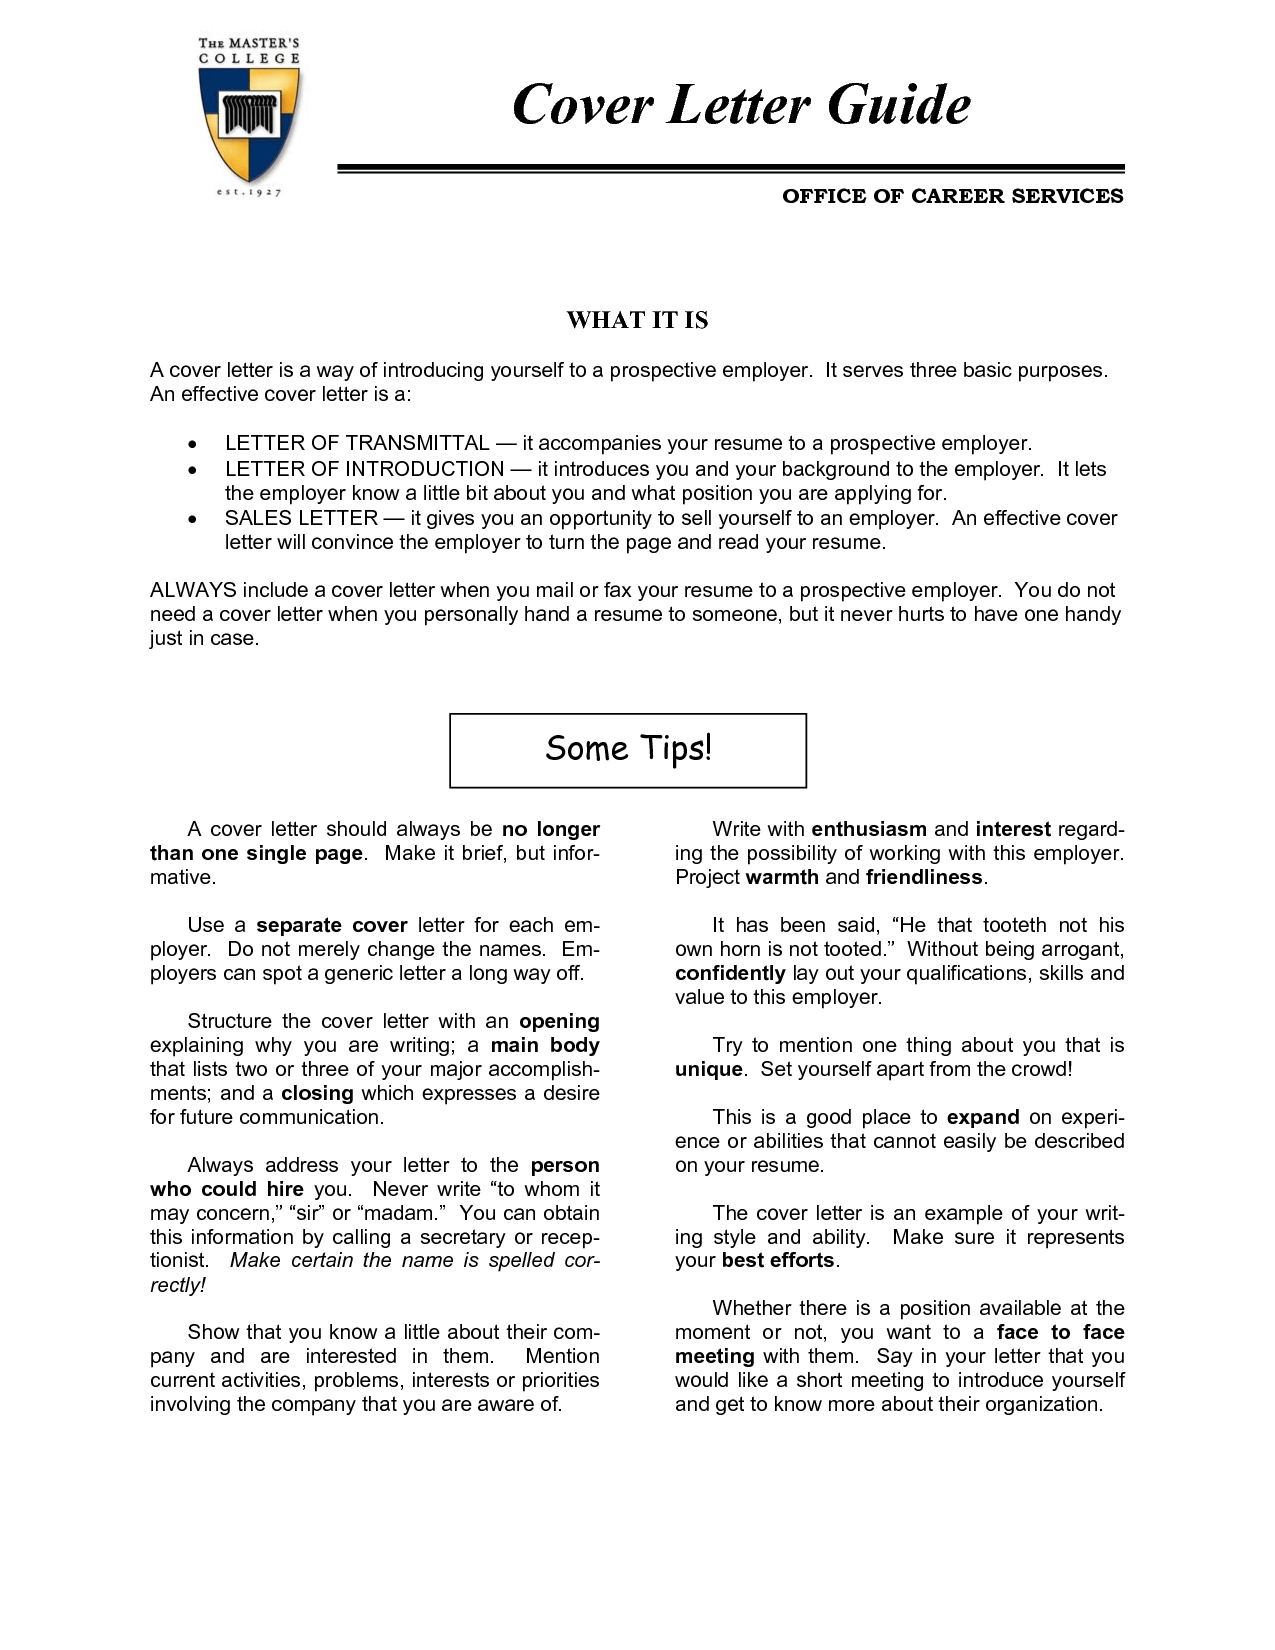 Transmittal Cover Letter Template - Job Change Cover Letter Acurnamedia